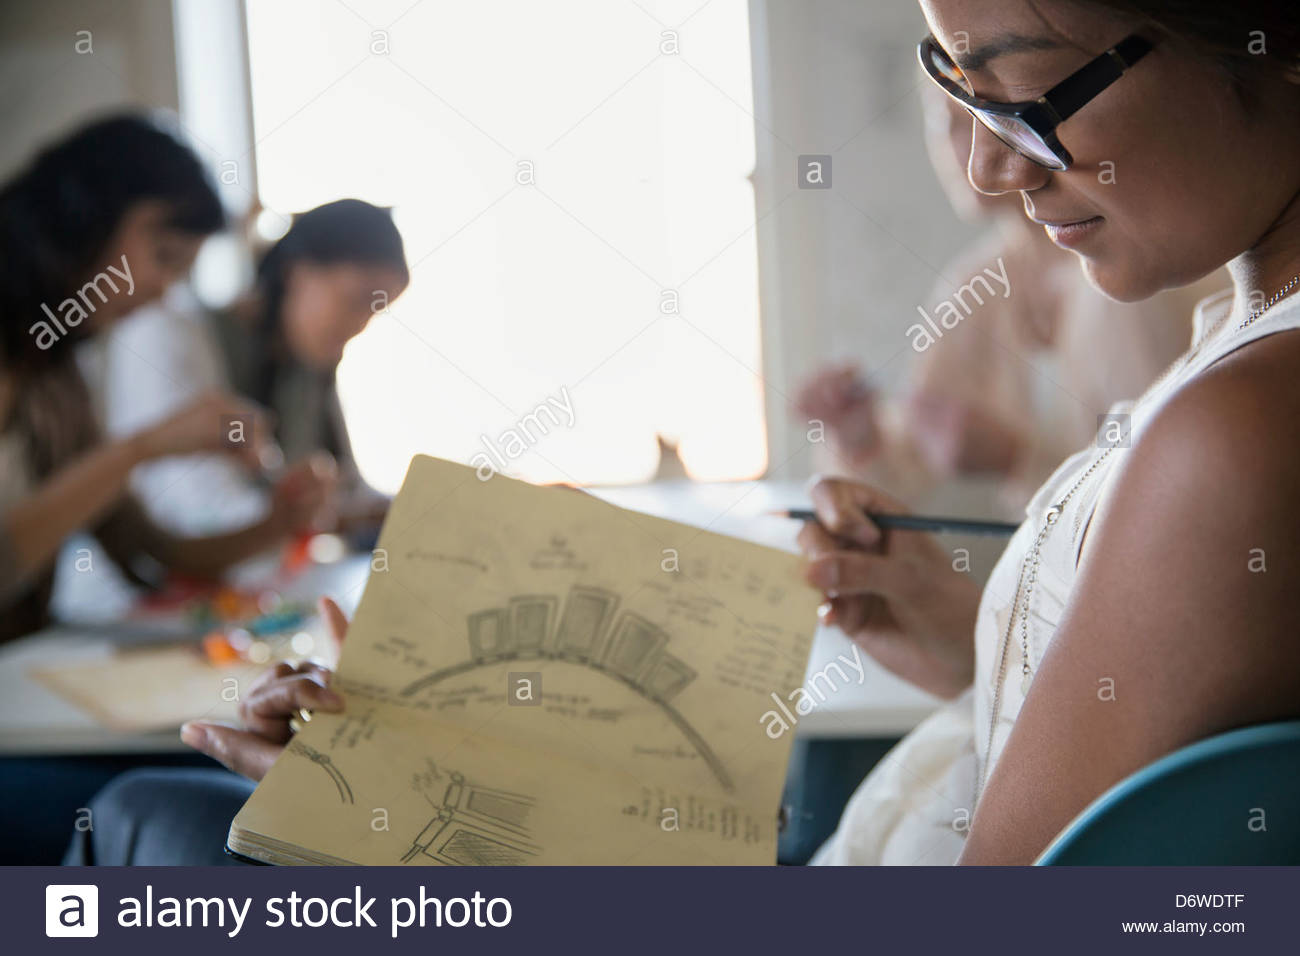 Young woman holding sketch book with colleagues working in background - Stock Image